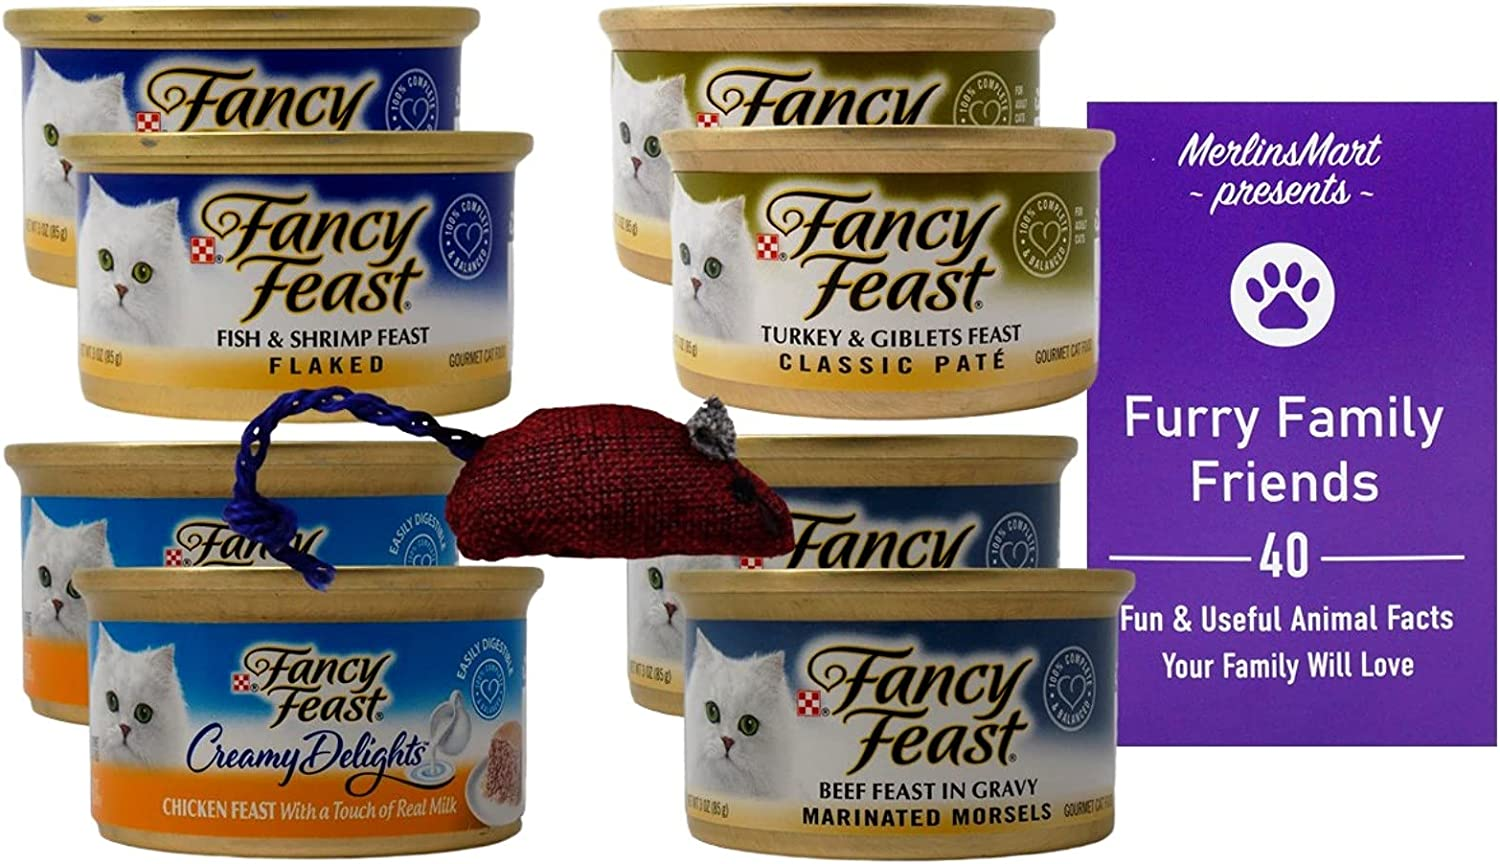 Fancy Feast Adult Cat Food 4 Flavor 8 Can Variety (2) Each: Flaked Fish Shrimp, Creamy Chicken, Turkey Giblets Pate, Marinated Beef (3 Ounces) - Plus Catnip Toy and Fun Facts Booklet Bundle